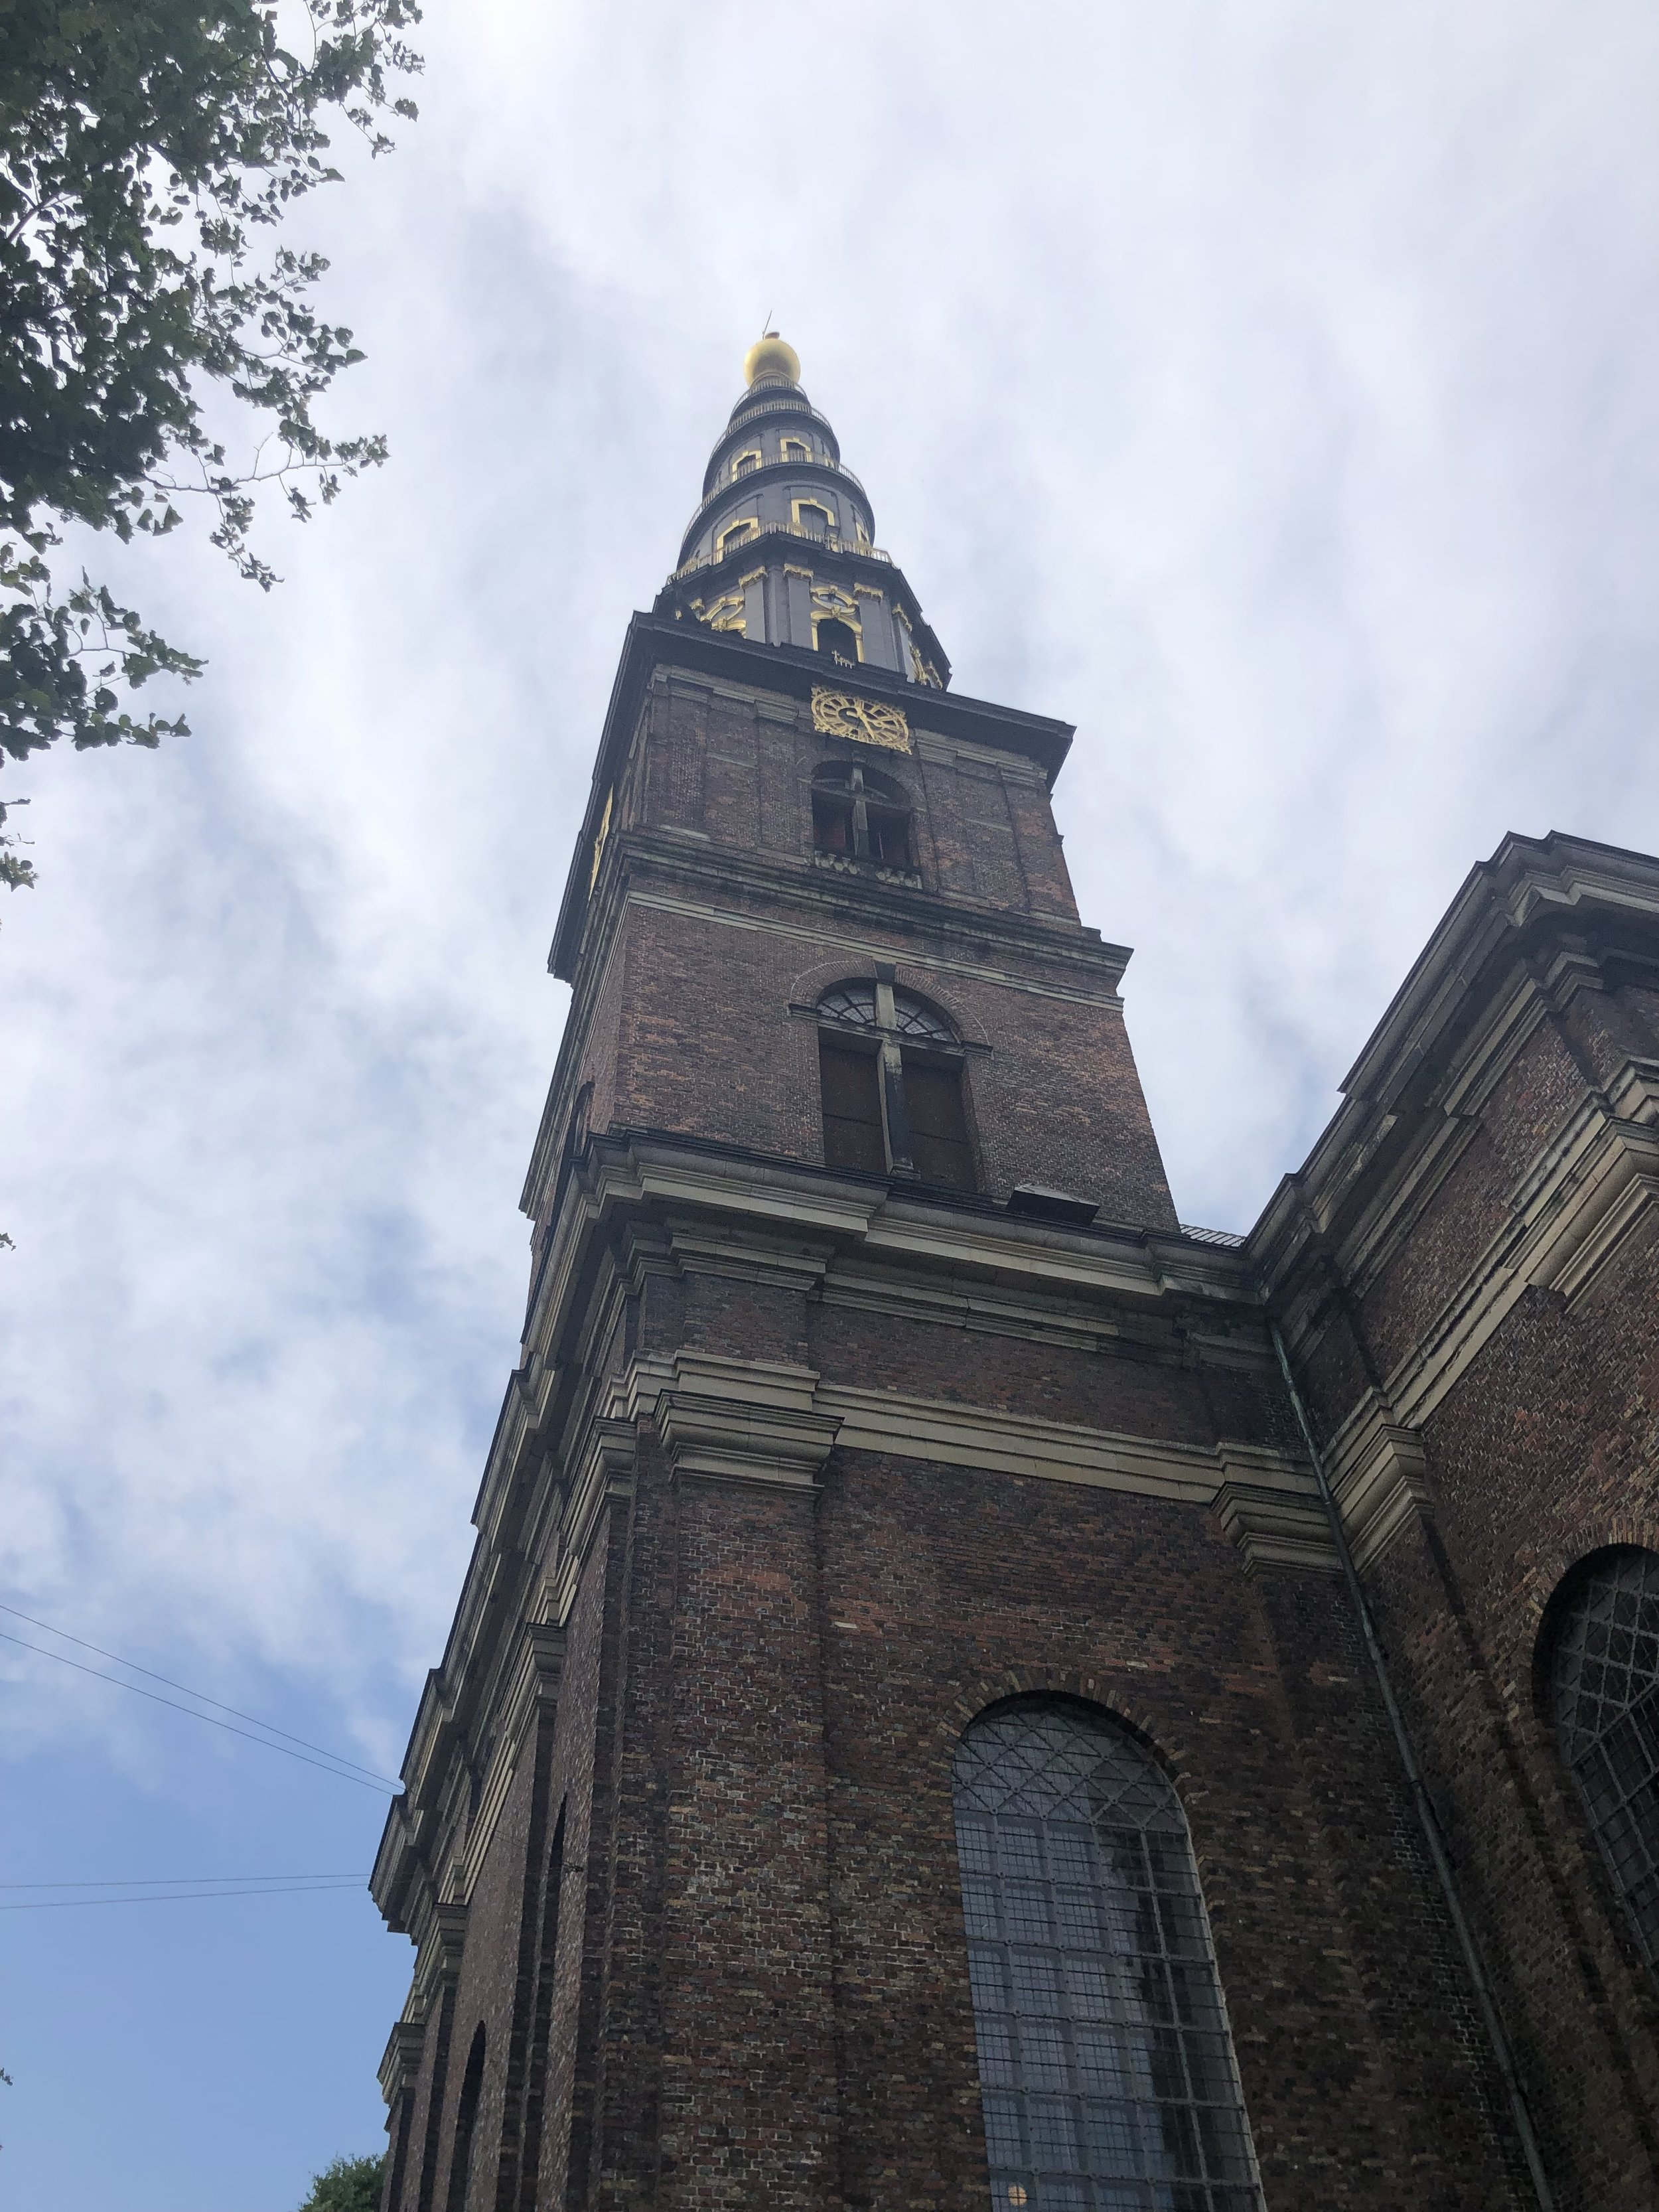 I climbed the steeple in this old church for a fantastic view of Copenhagen.